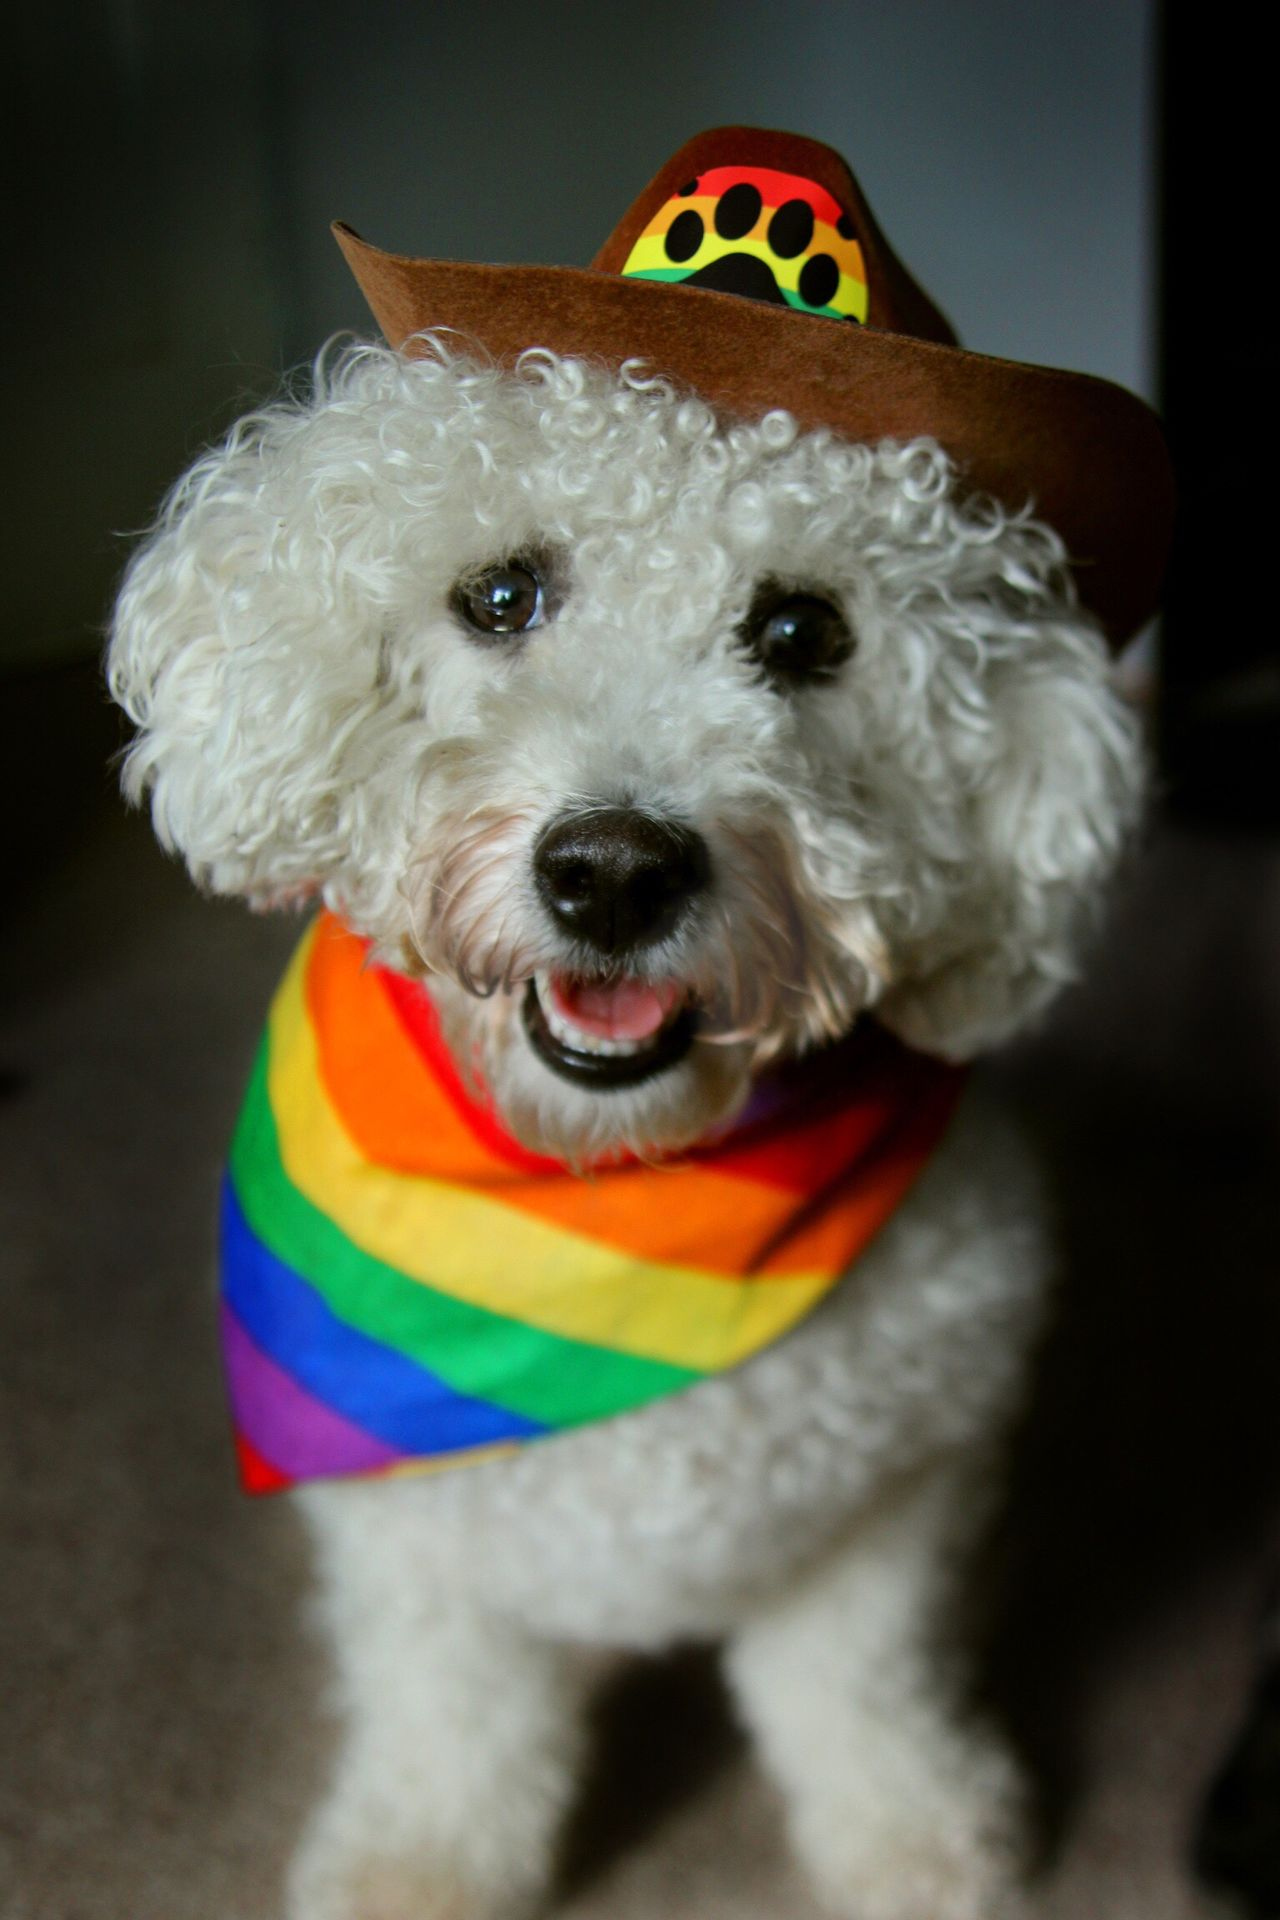 Dog Cute Rainbows Cowboy Cowdog Happy Pride Unique Fun Joy White Dog Fluffy Pets Dog Clothes Dog Outfit Bichonfrise Colors and patterns My Year My View